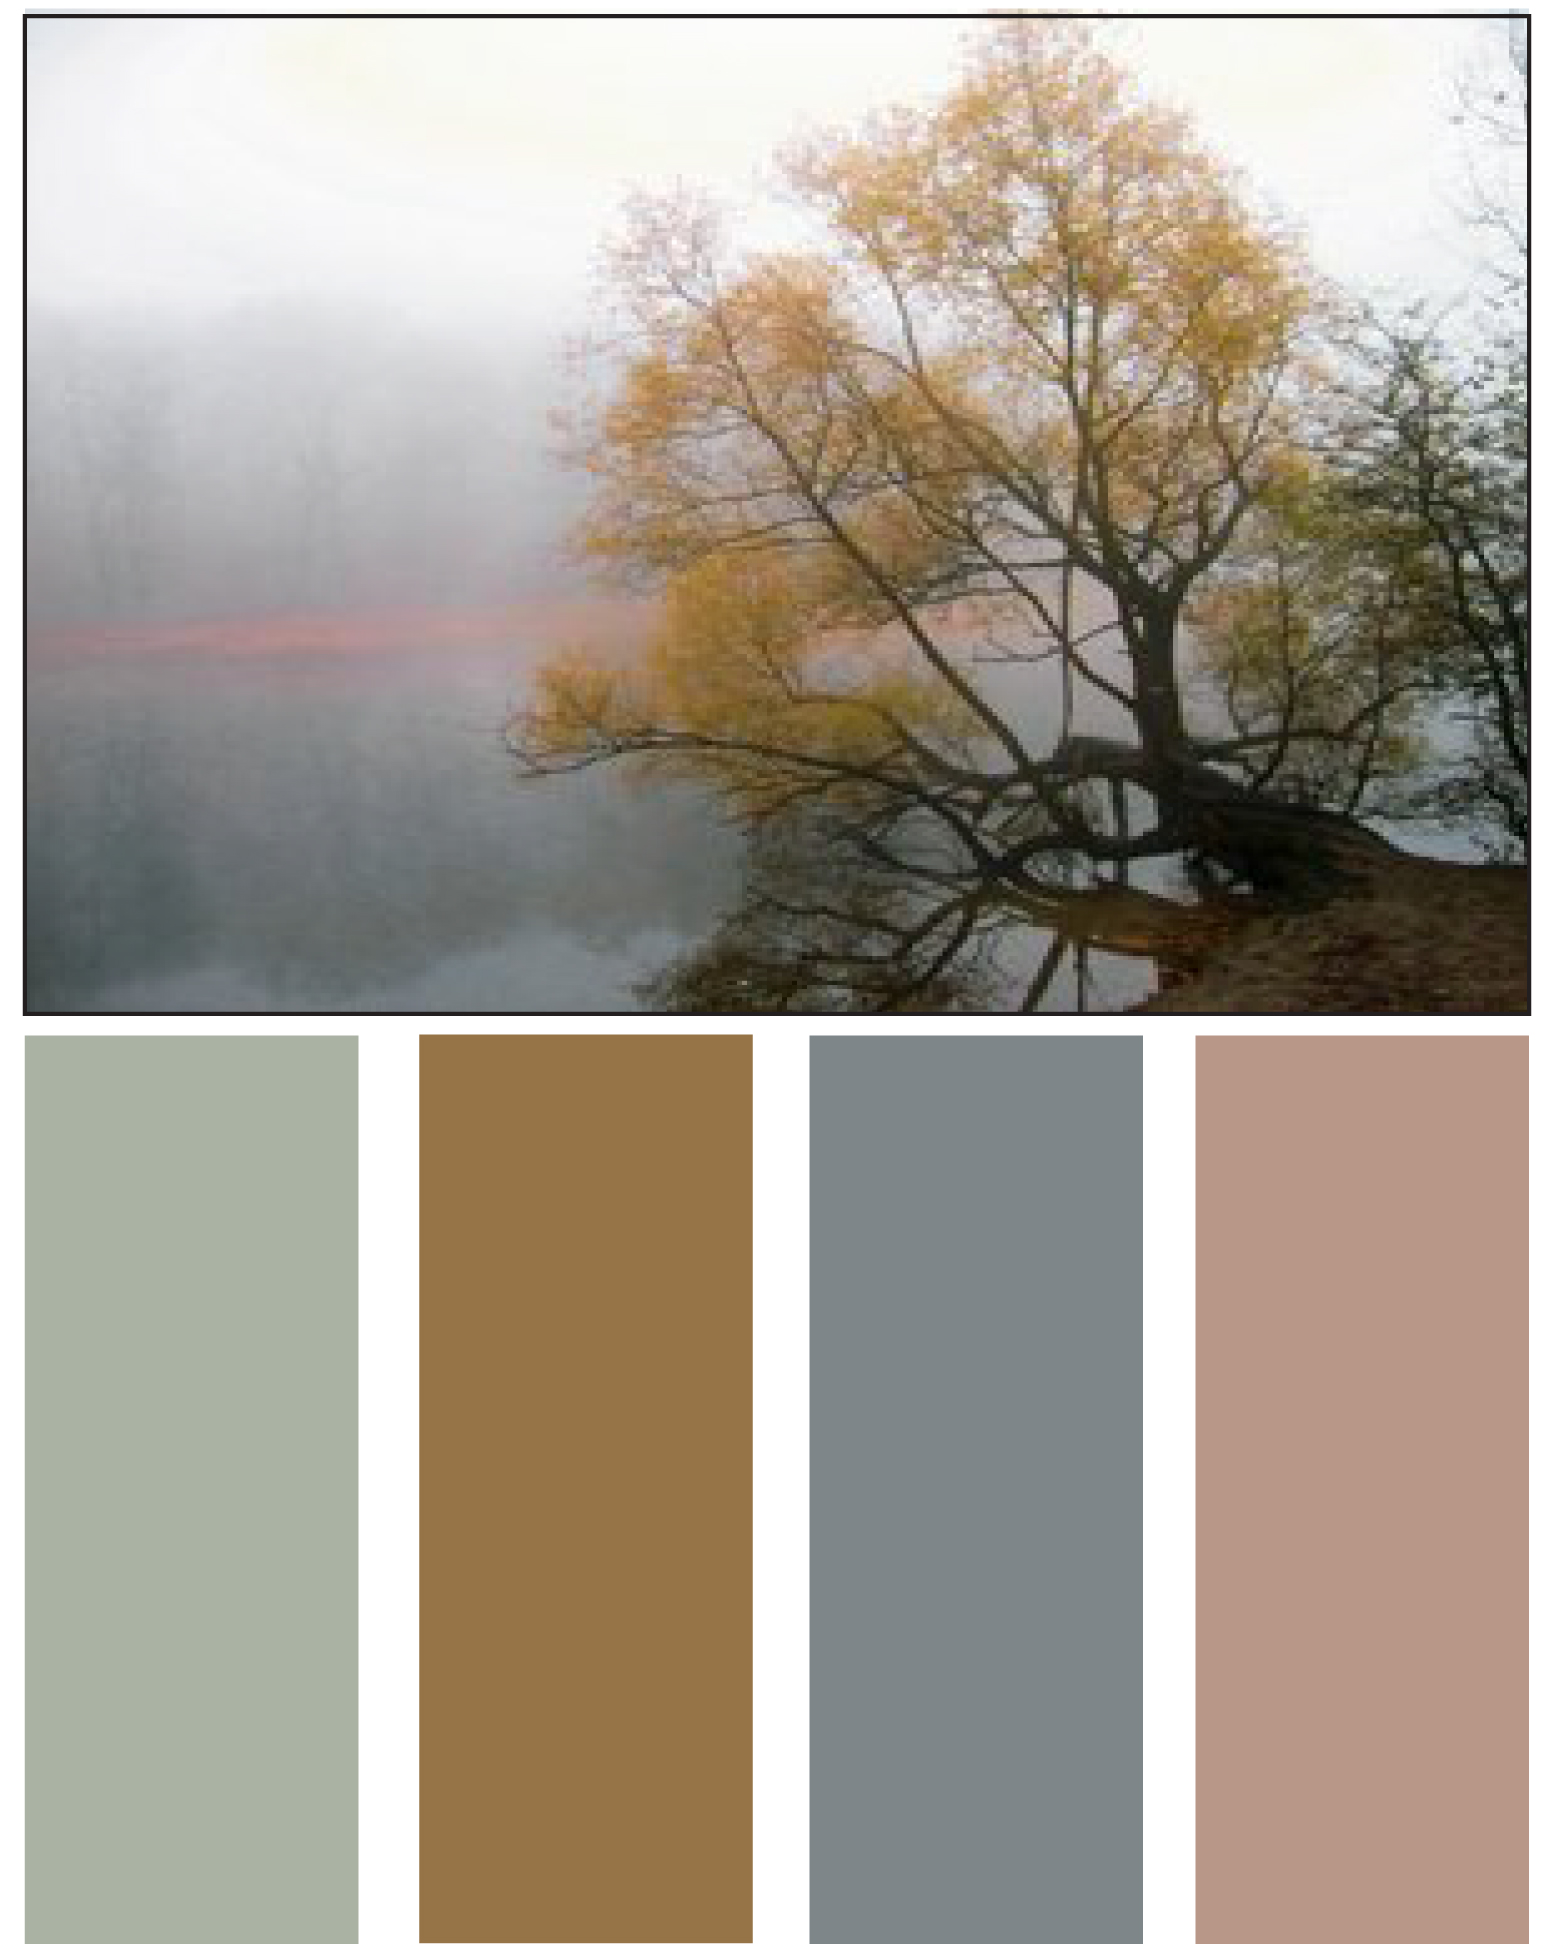 Wall Colour Inspiration: Home Design Ideas: Nature's Color Palette